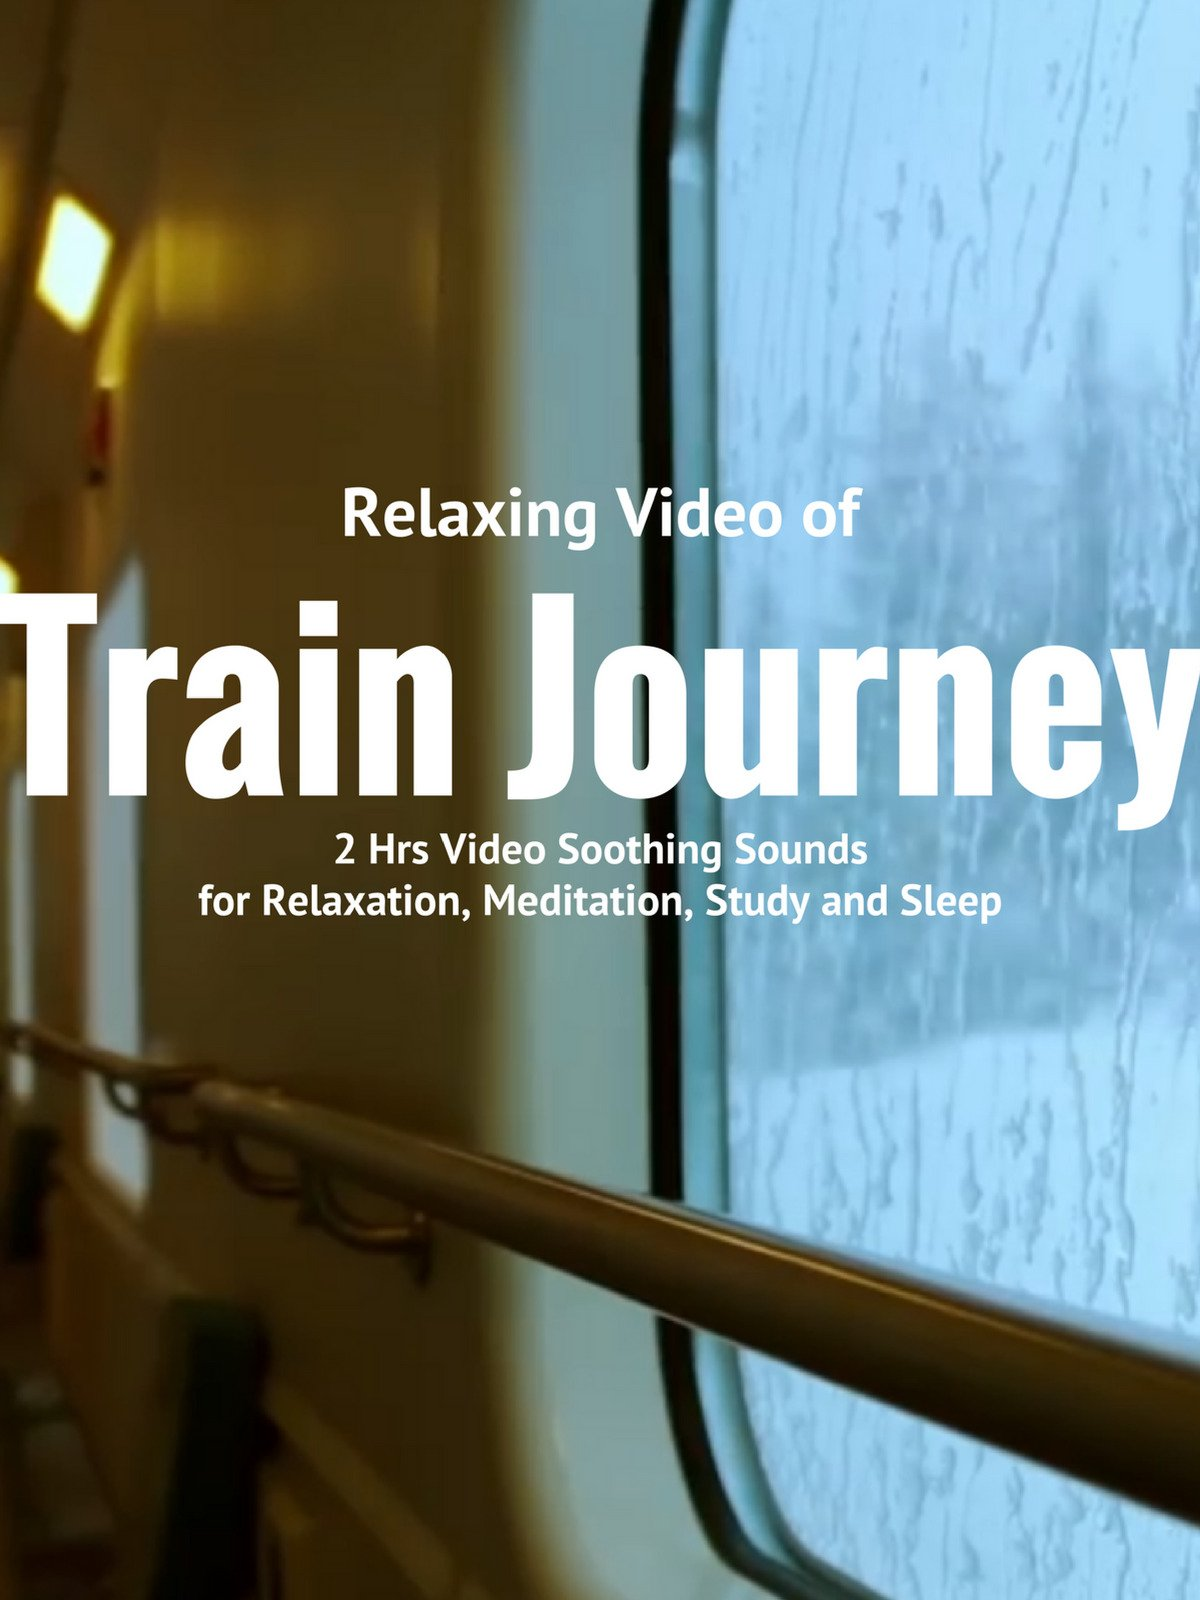 Relaxing Video of Train Journey